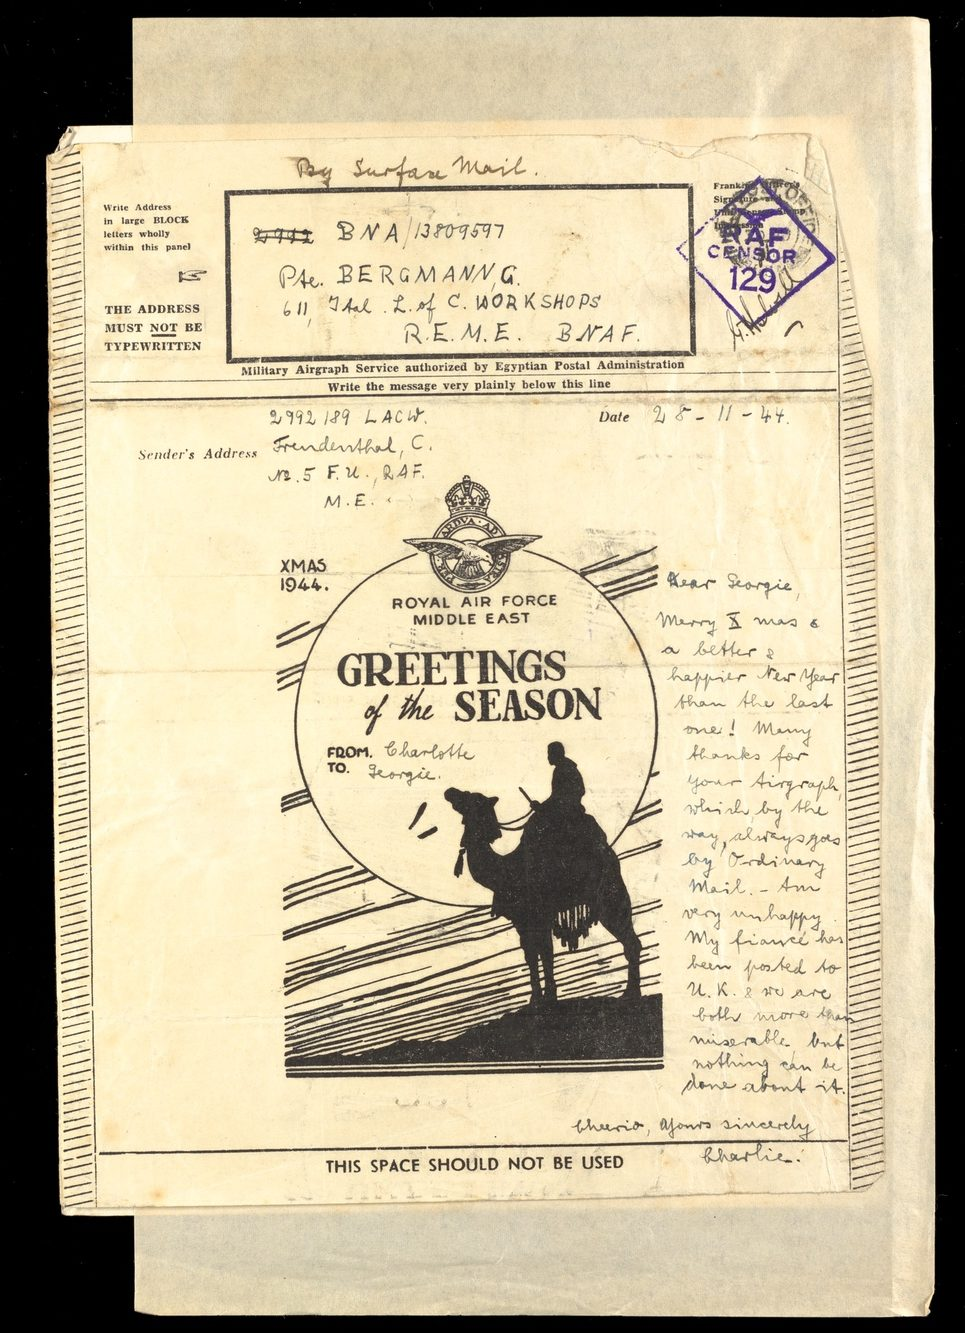 Printed image of a camel and note reading 'Greetings of the season'. Christmas note dated 1944